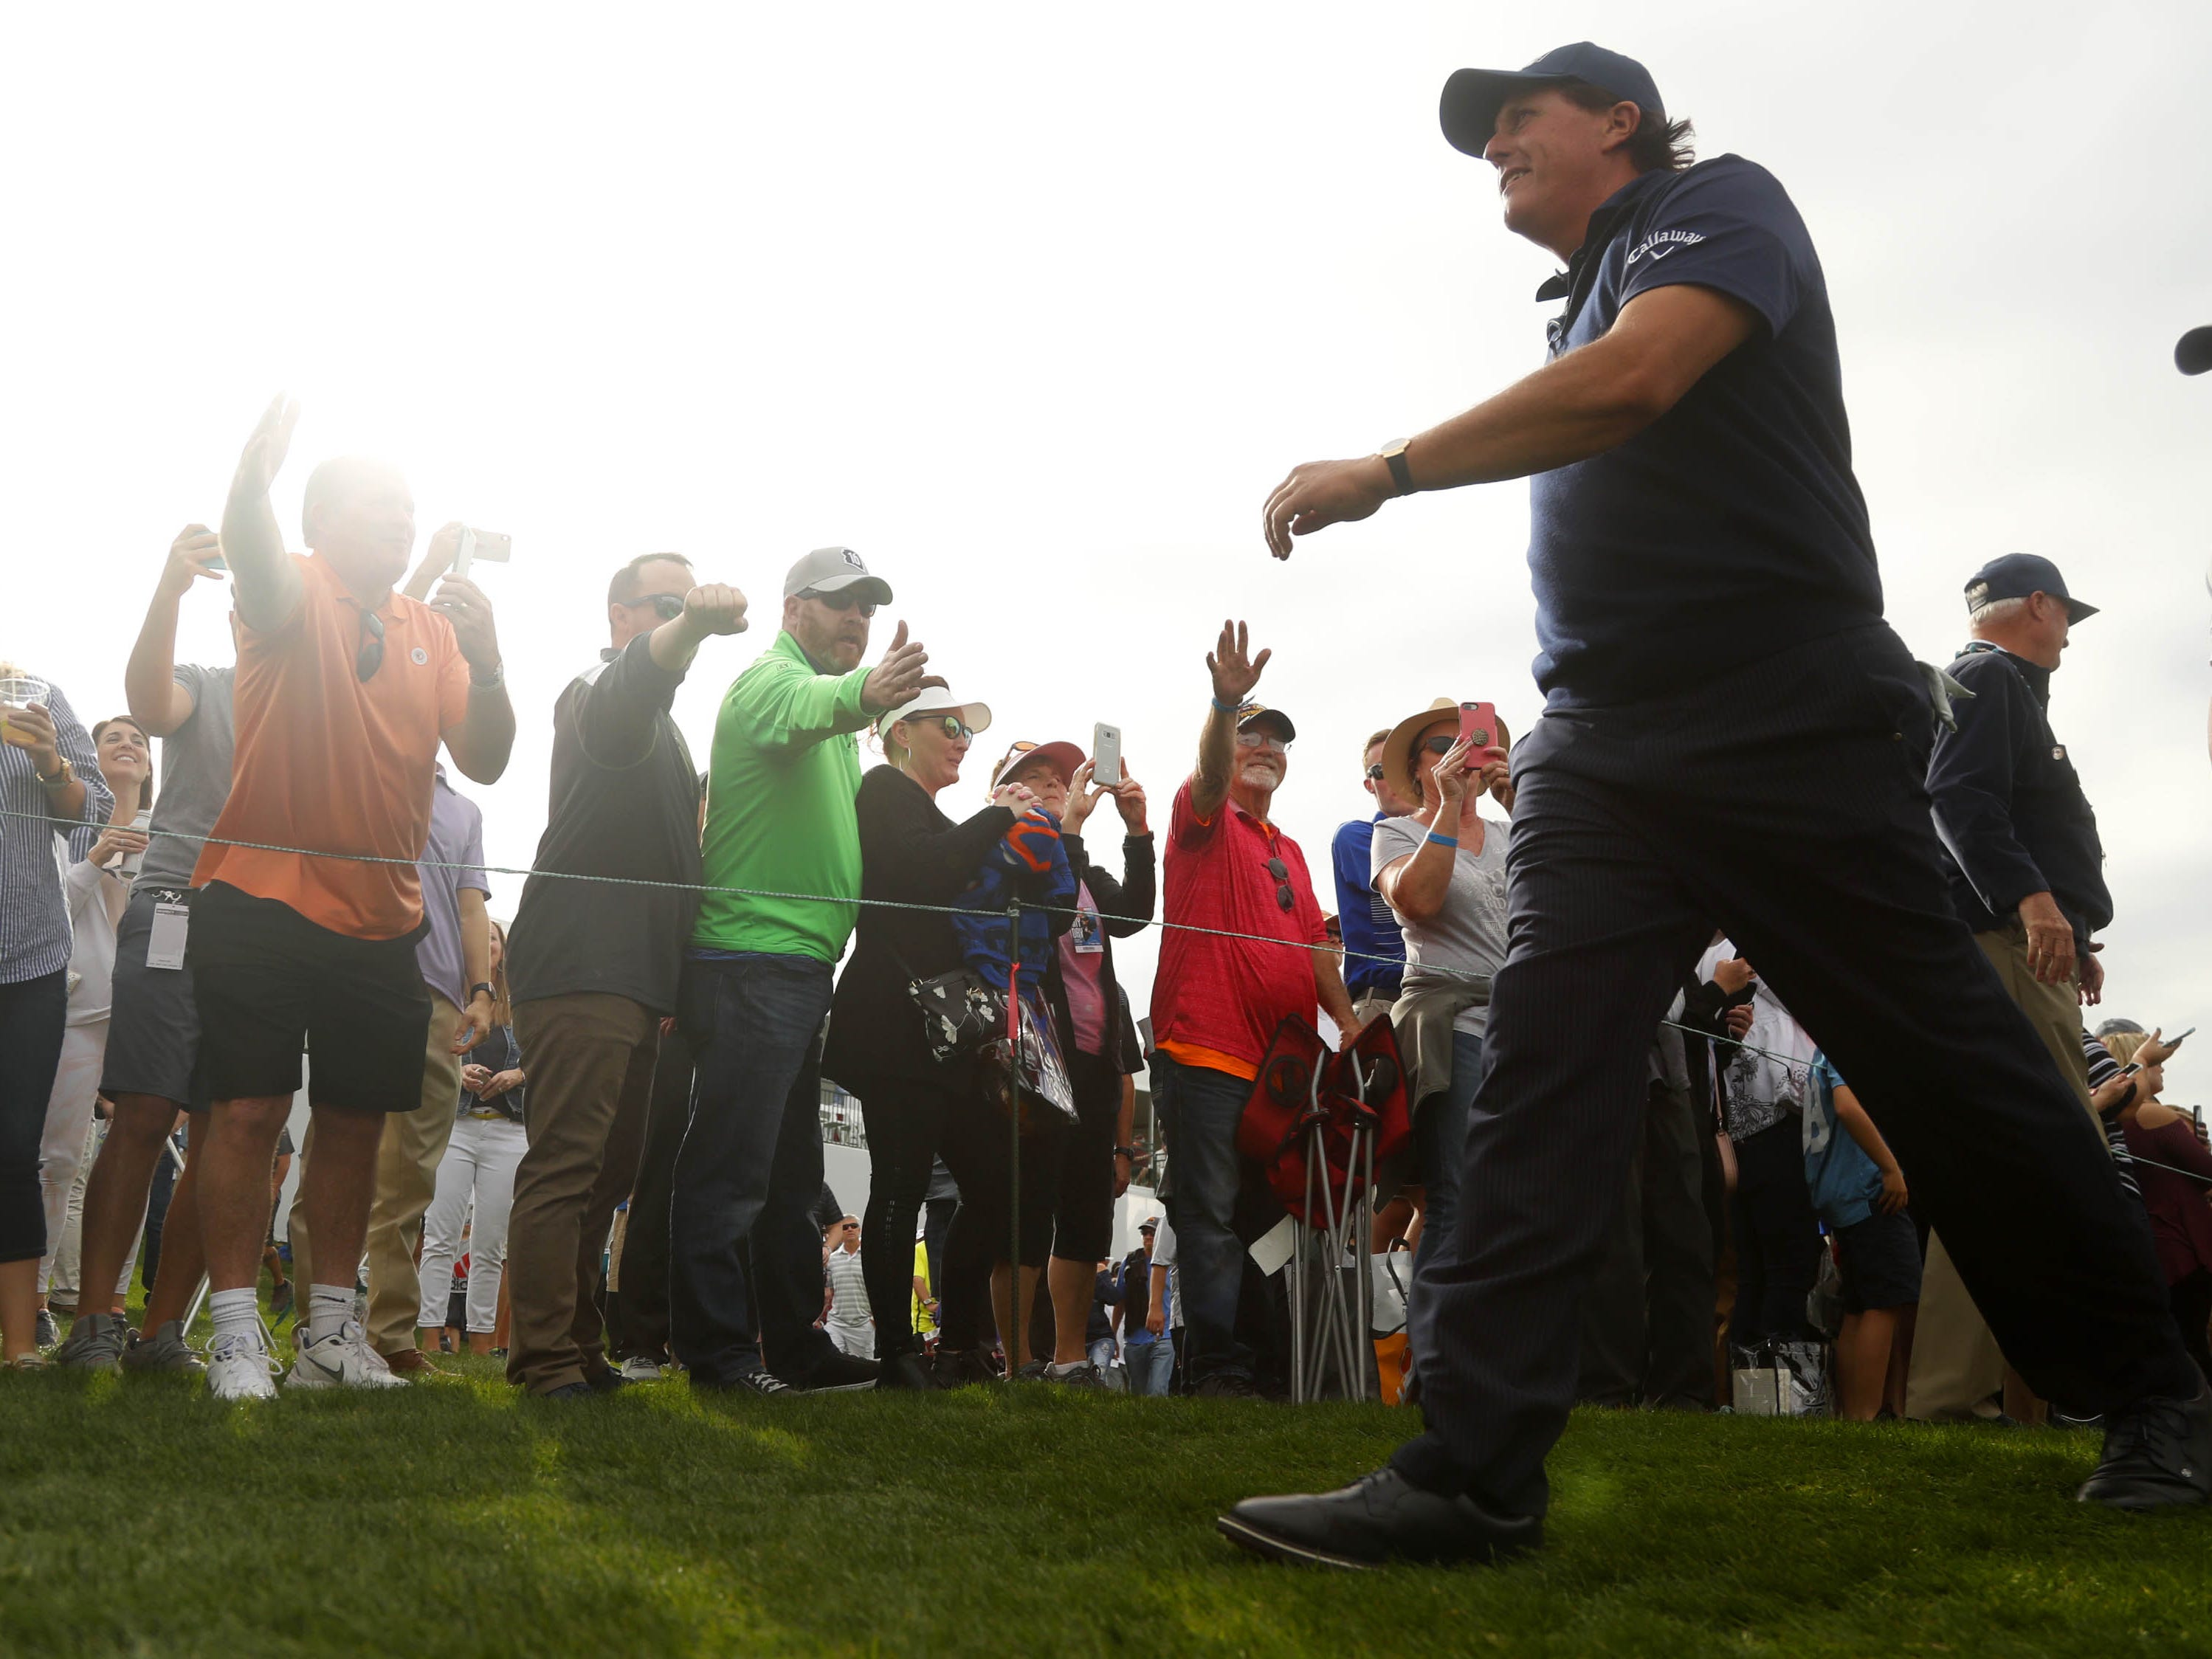 Phil Mickelson walks off the 9th hole greeted by fans during first round of the Waste Management Phoenix Open at TPC Scottsdale in Scottsdale, Ariz. on January 31, 2019.